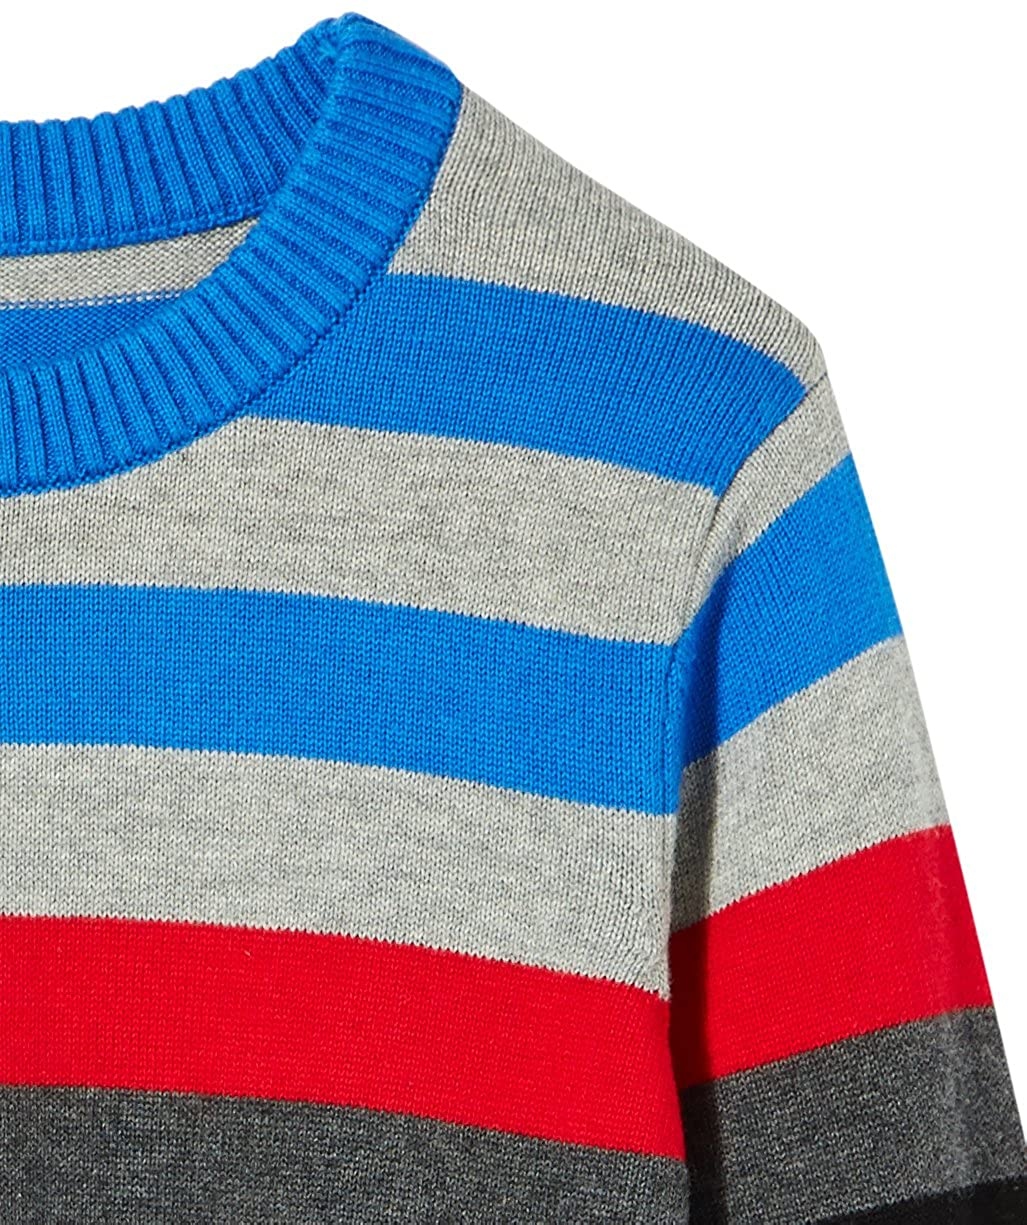 Kid Nation Kids Sweater Long Sleeve Crew Neck Pullover Stripe Cotton Knit Sweater for Boys or Girls 7KNB022